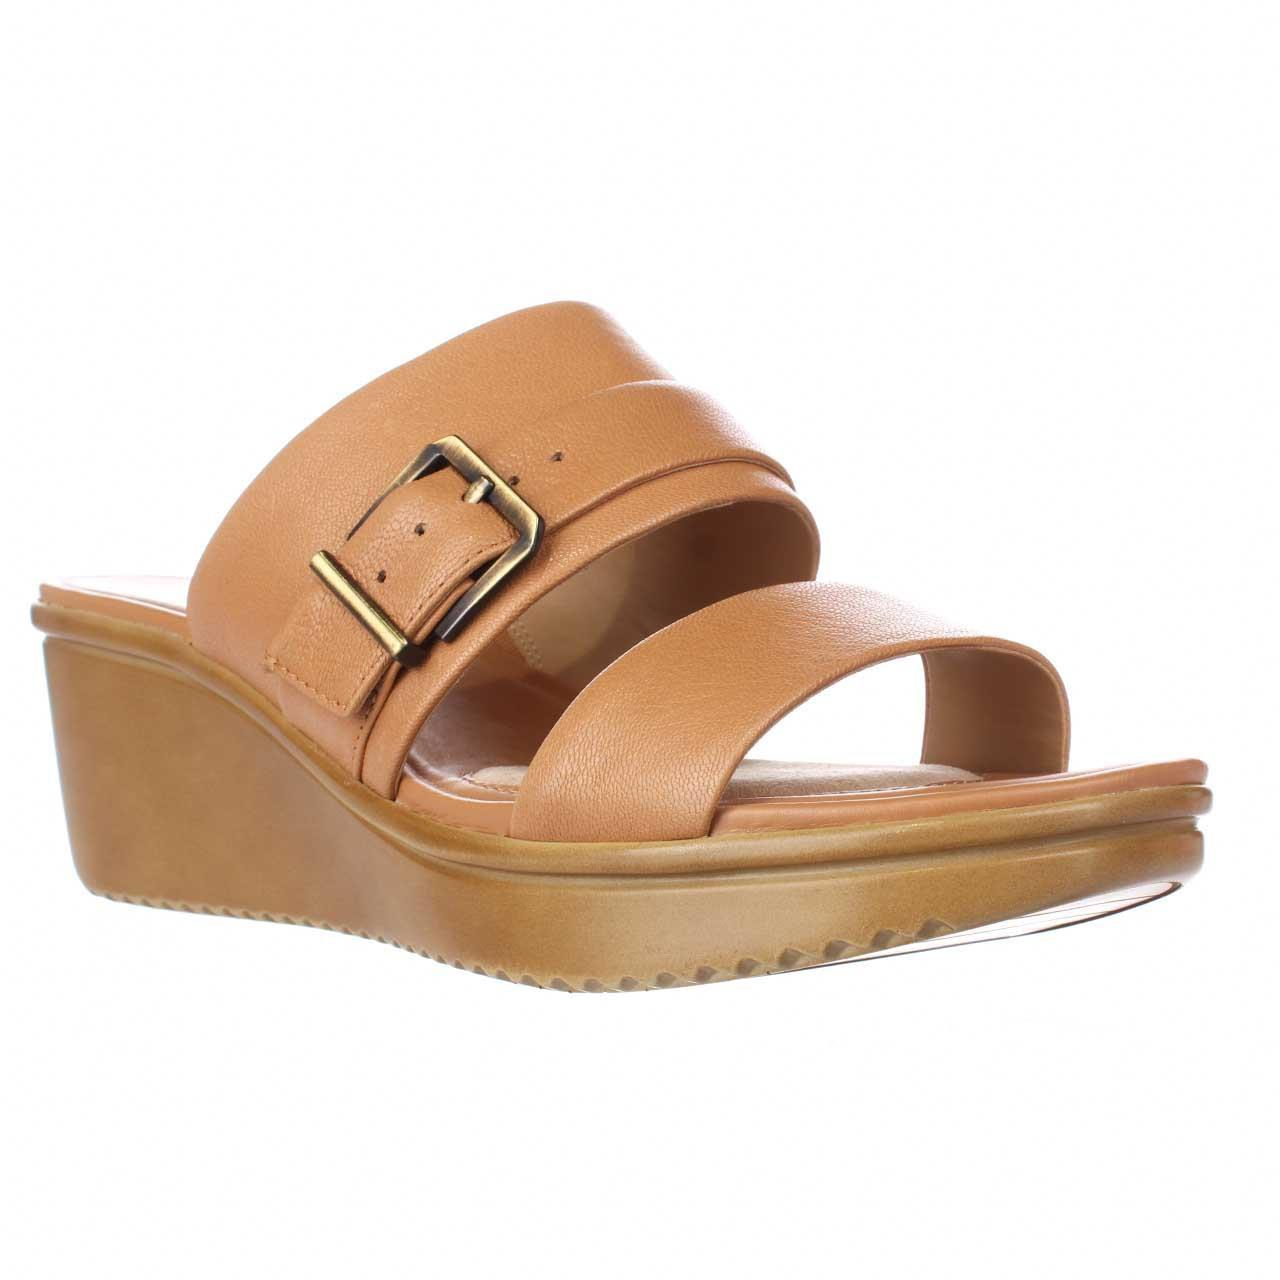 05f0ee455cab Lyst - Naturalizer Aileen Wedge Slide Sandals in Brown